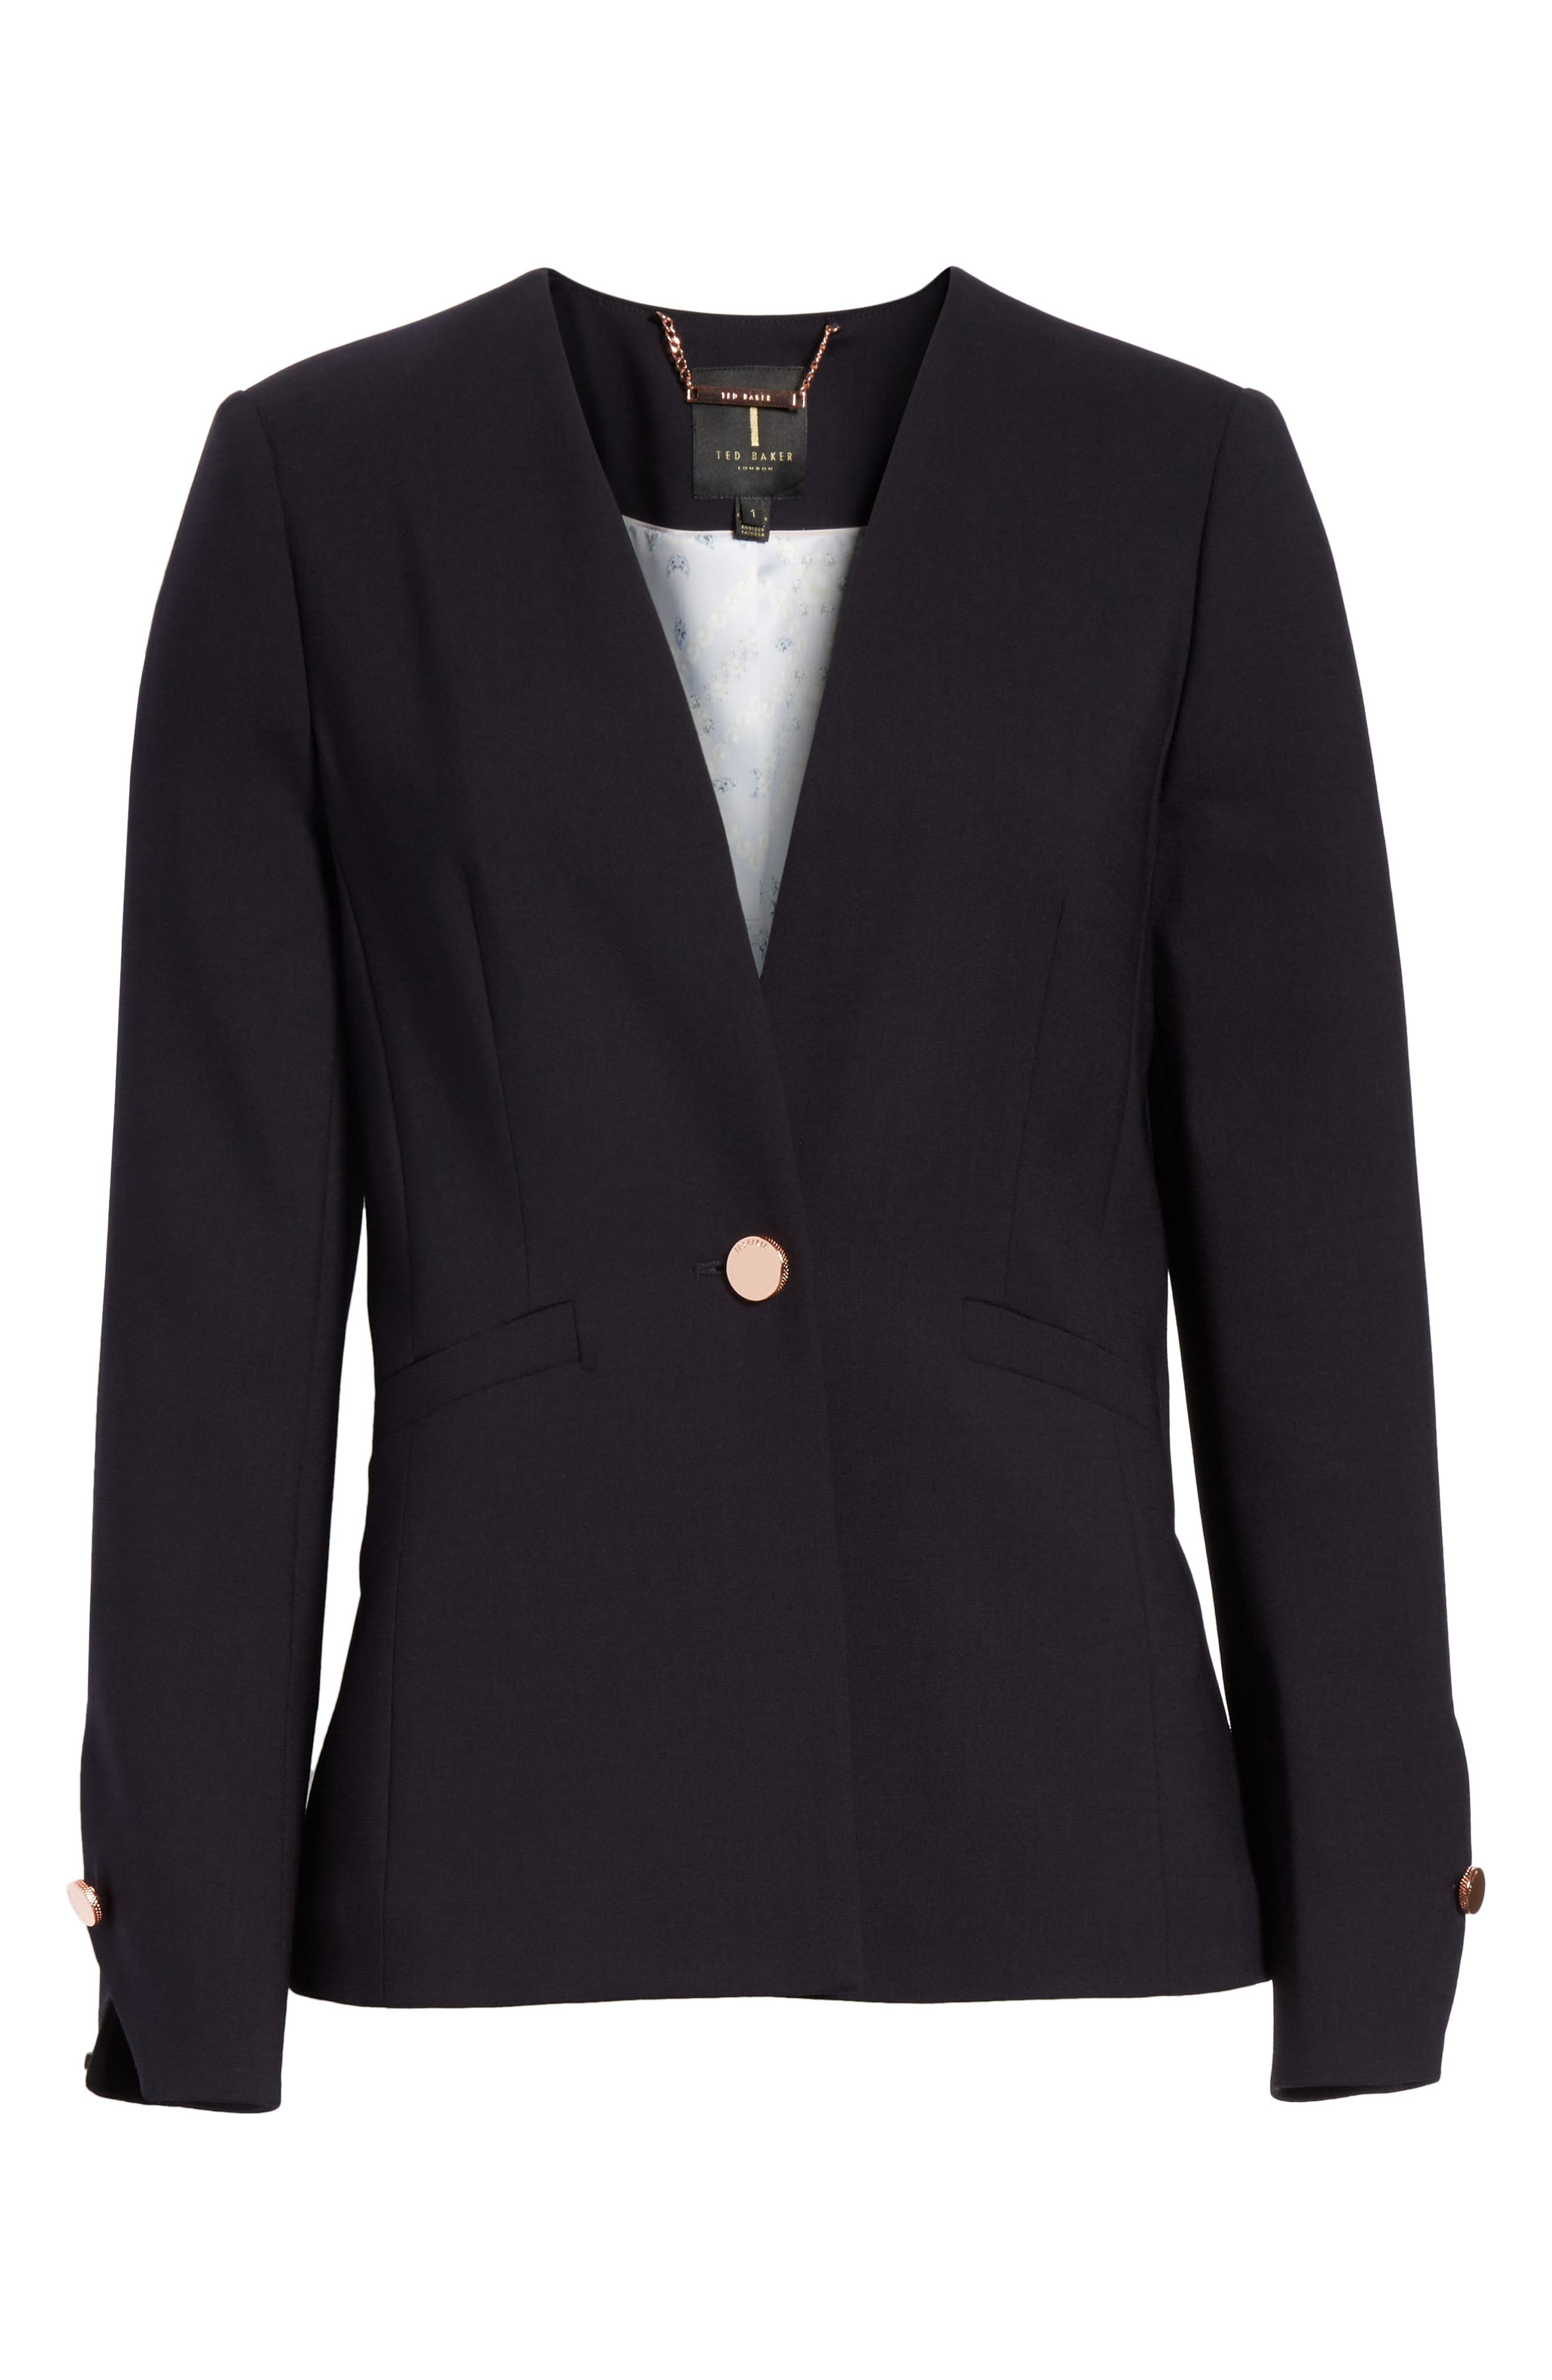 TED BAKER LONDON,                             Ted Working Title Collarless Stretch Wool Jacket,                             Alternate thumbnail 5, color,                             410